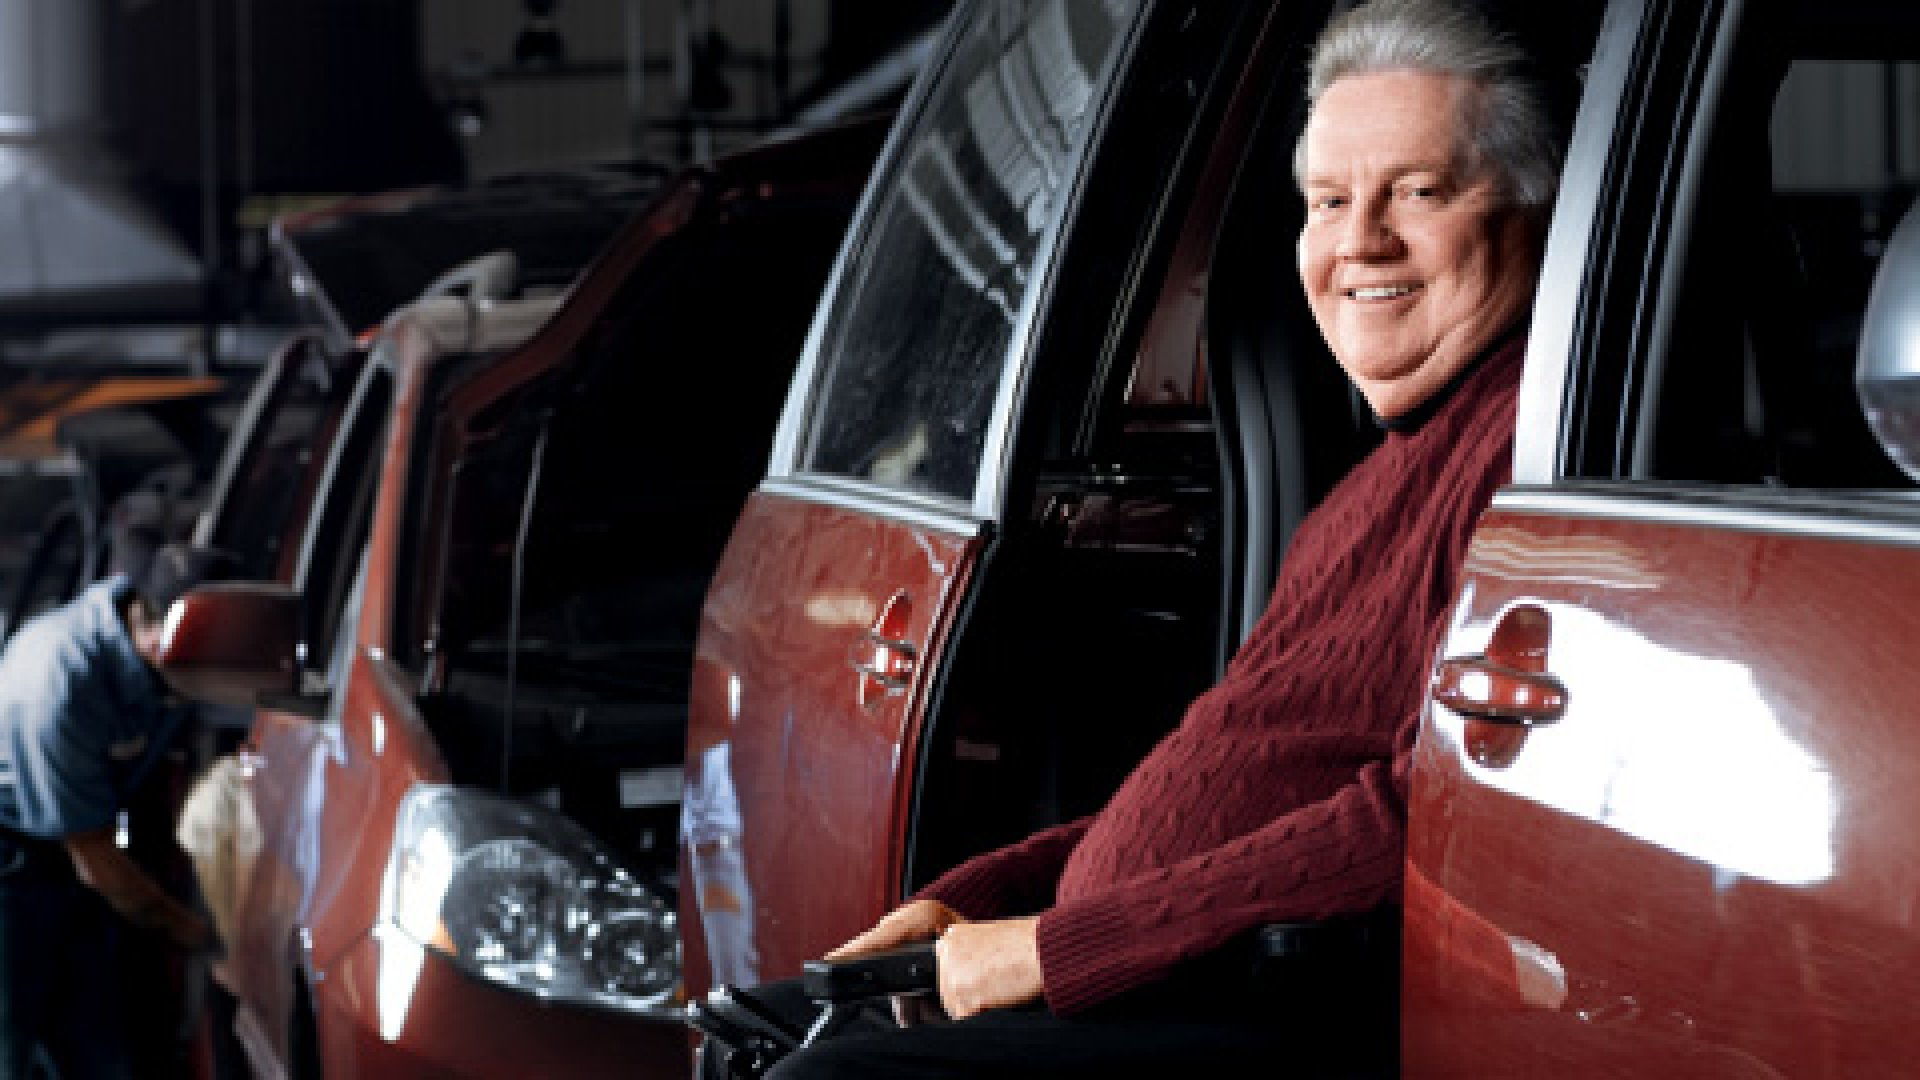 <strong>MOBILITY MAN</strong> In the early years of his business, Ralph Braun drove 50,000 miles a year in one of his lift-equipped vans.